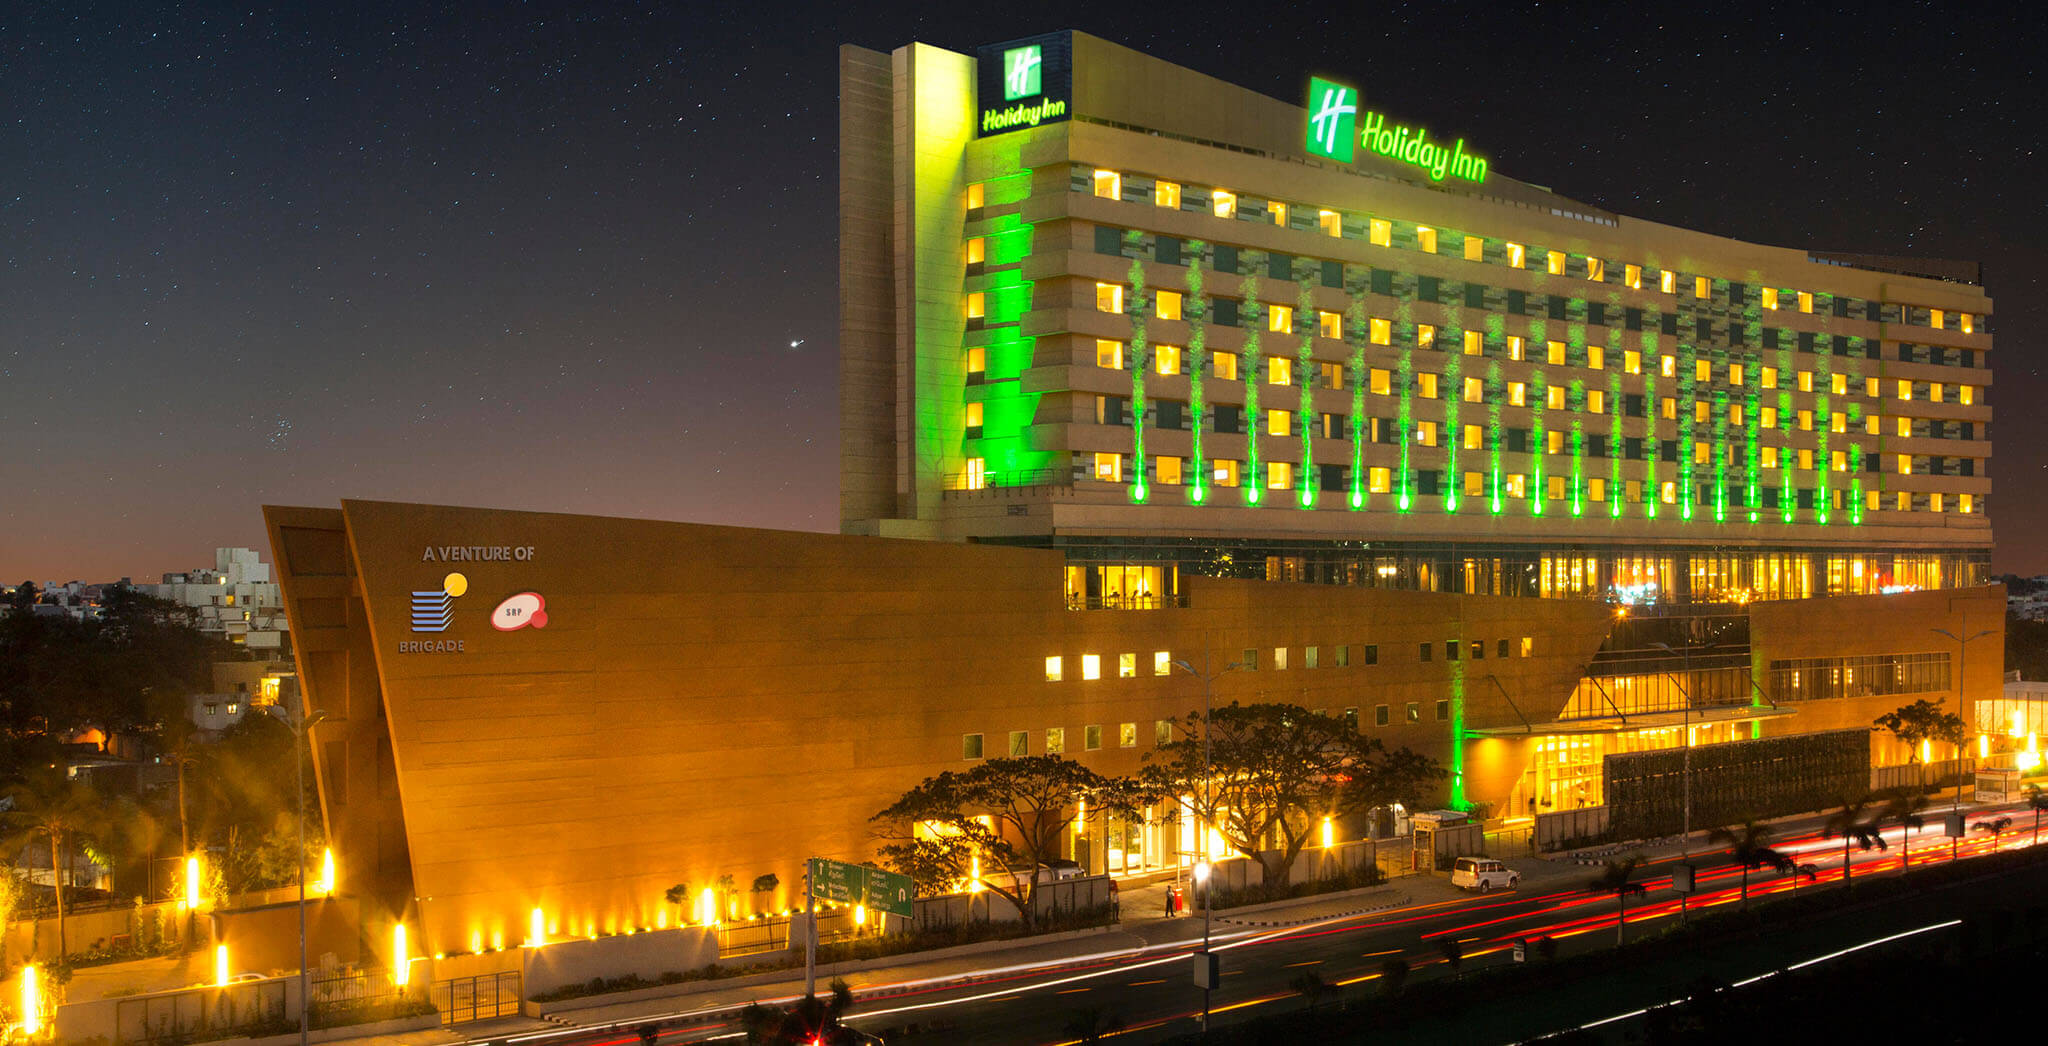 Holiday Inn Chennai gallery image